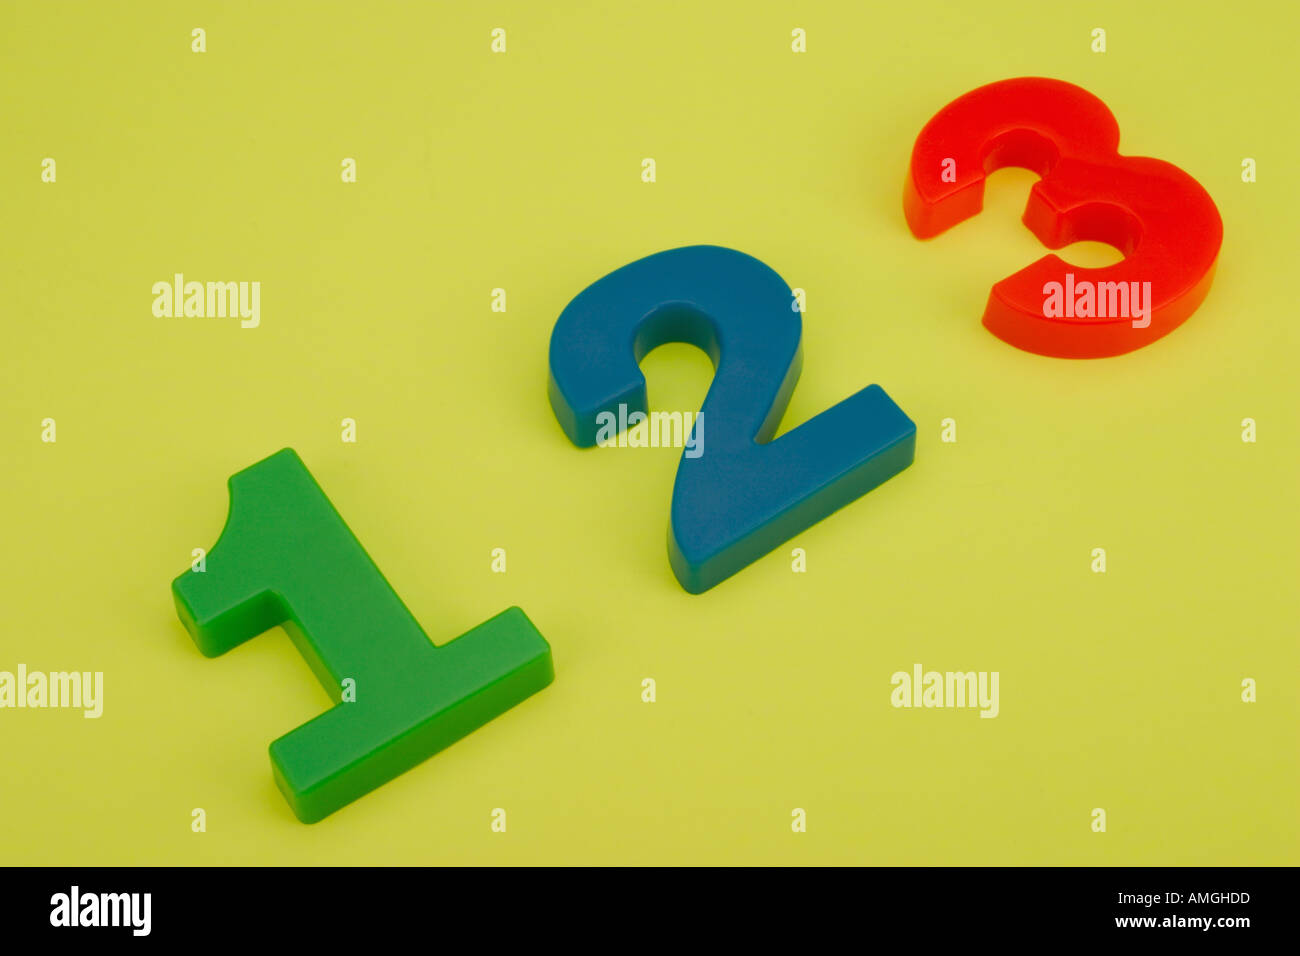 Plastic numbers 1 2 3 - Stock Image